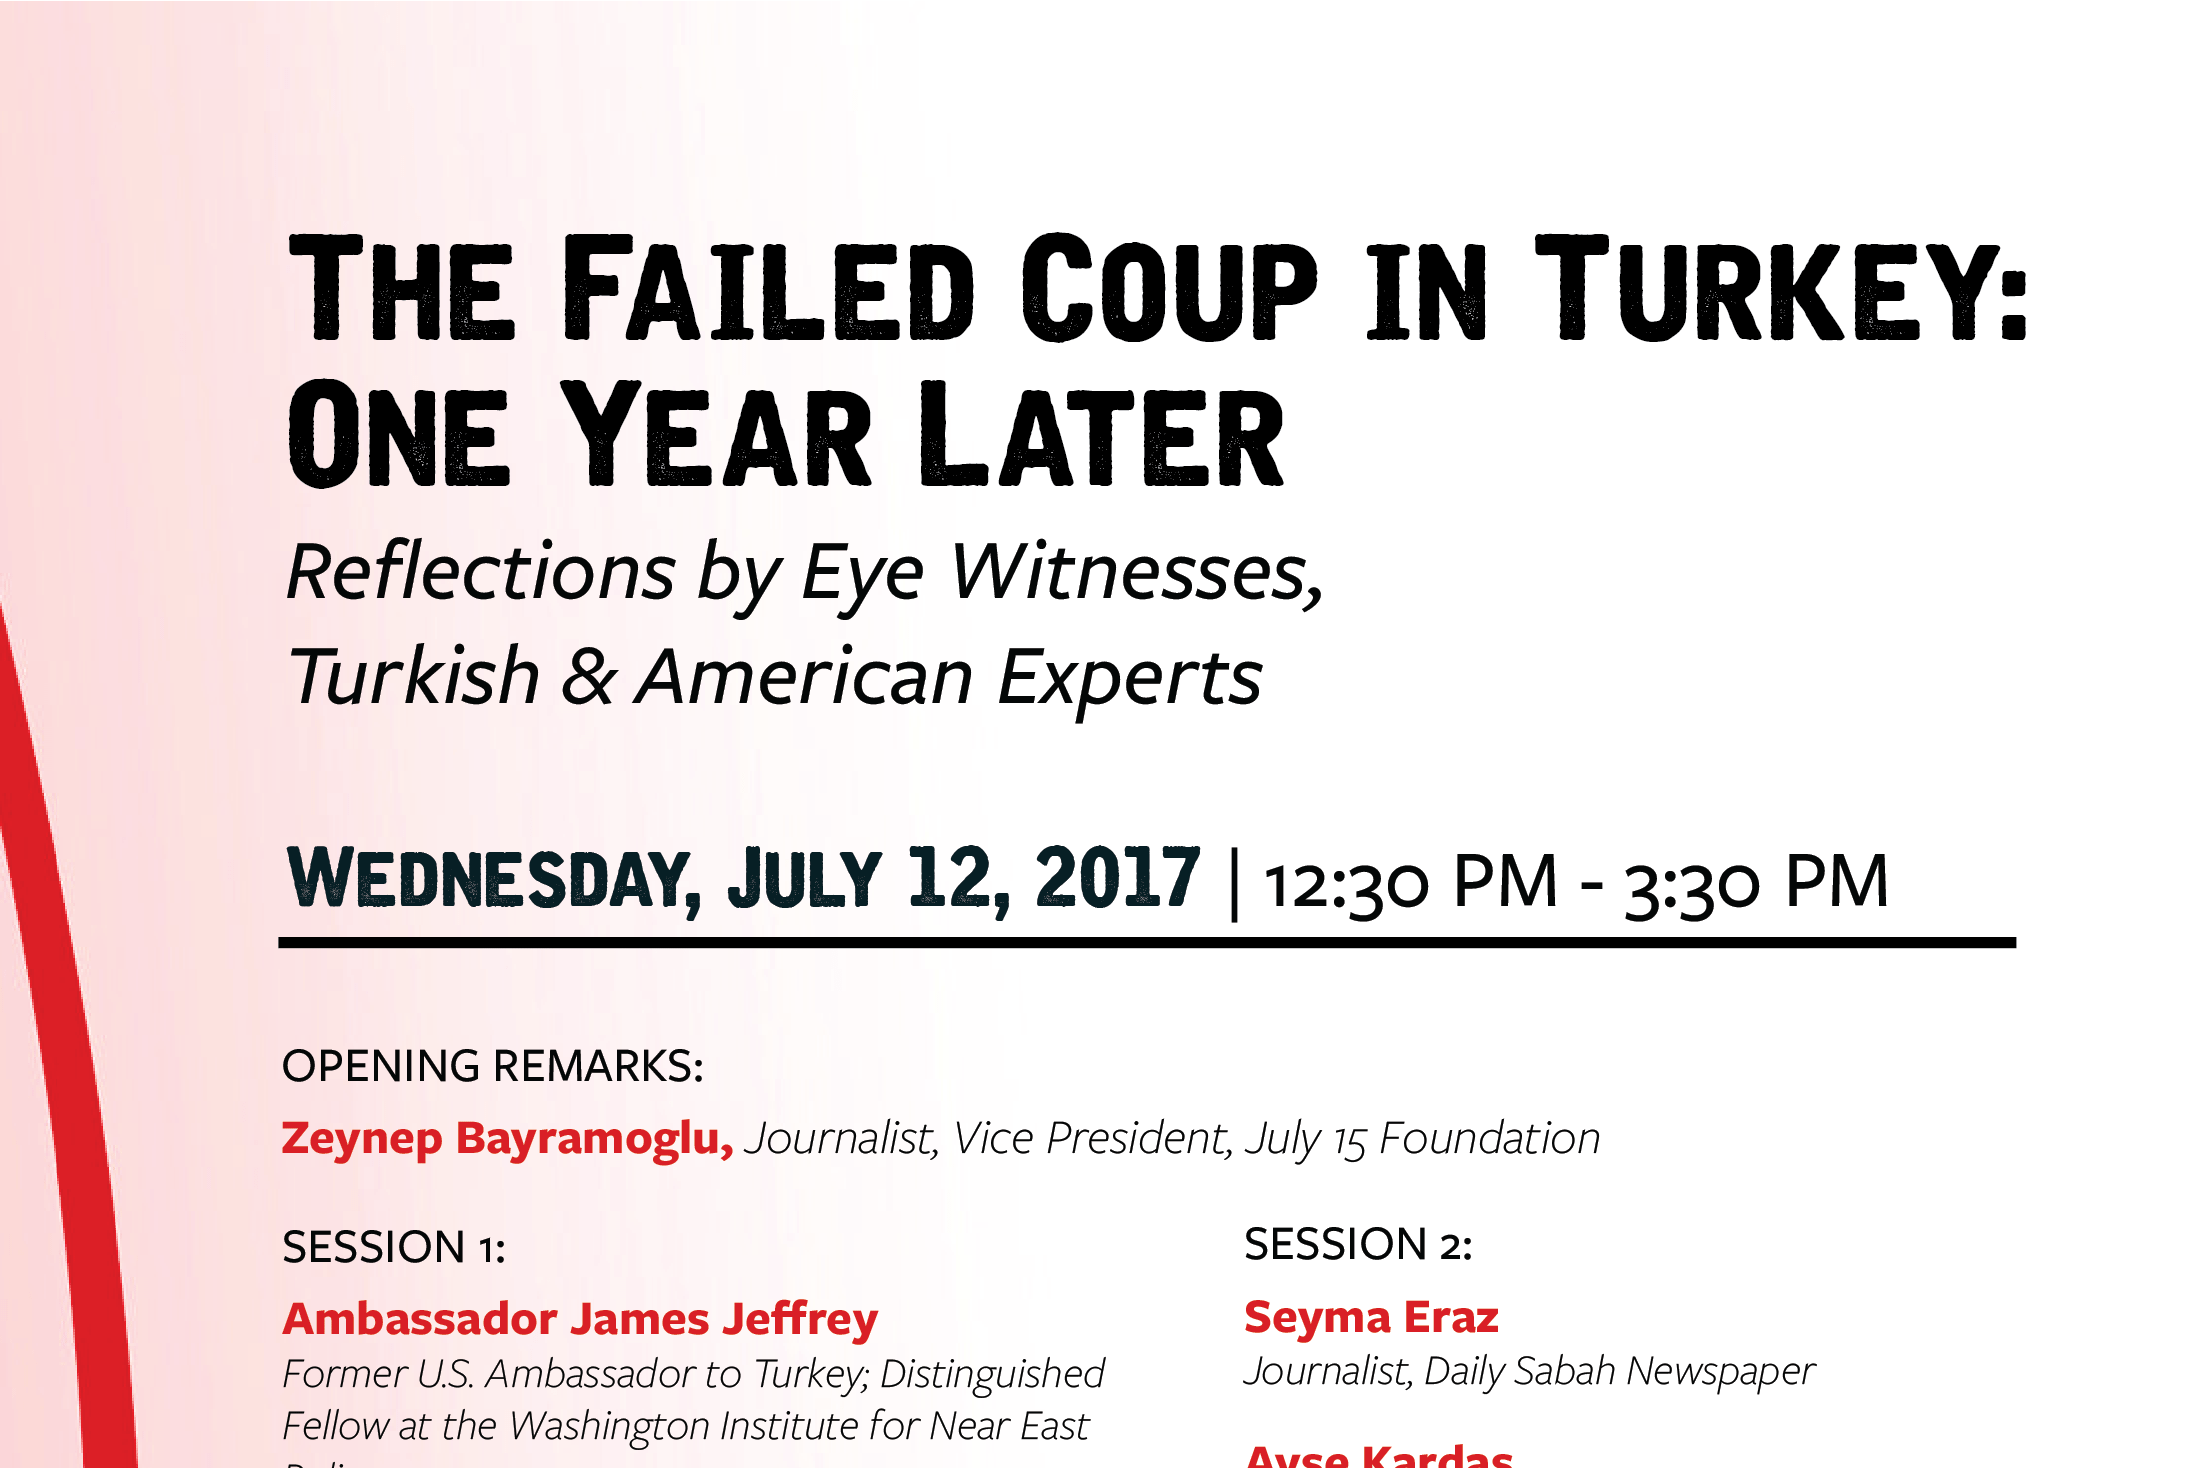 Event: One Year Later: The Failed Coup in Turkey